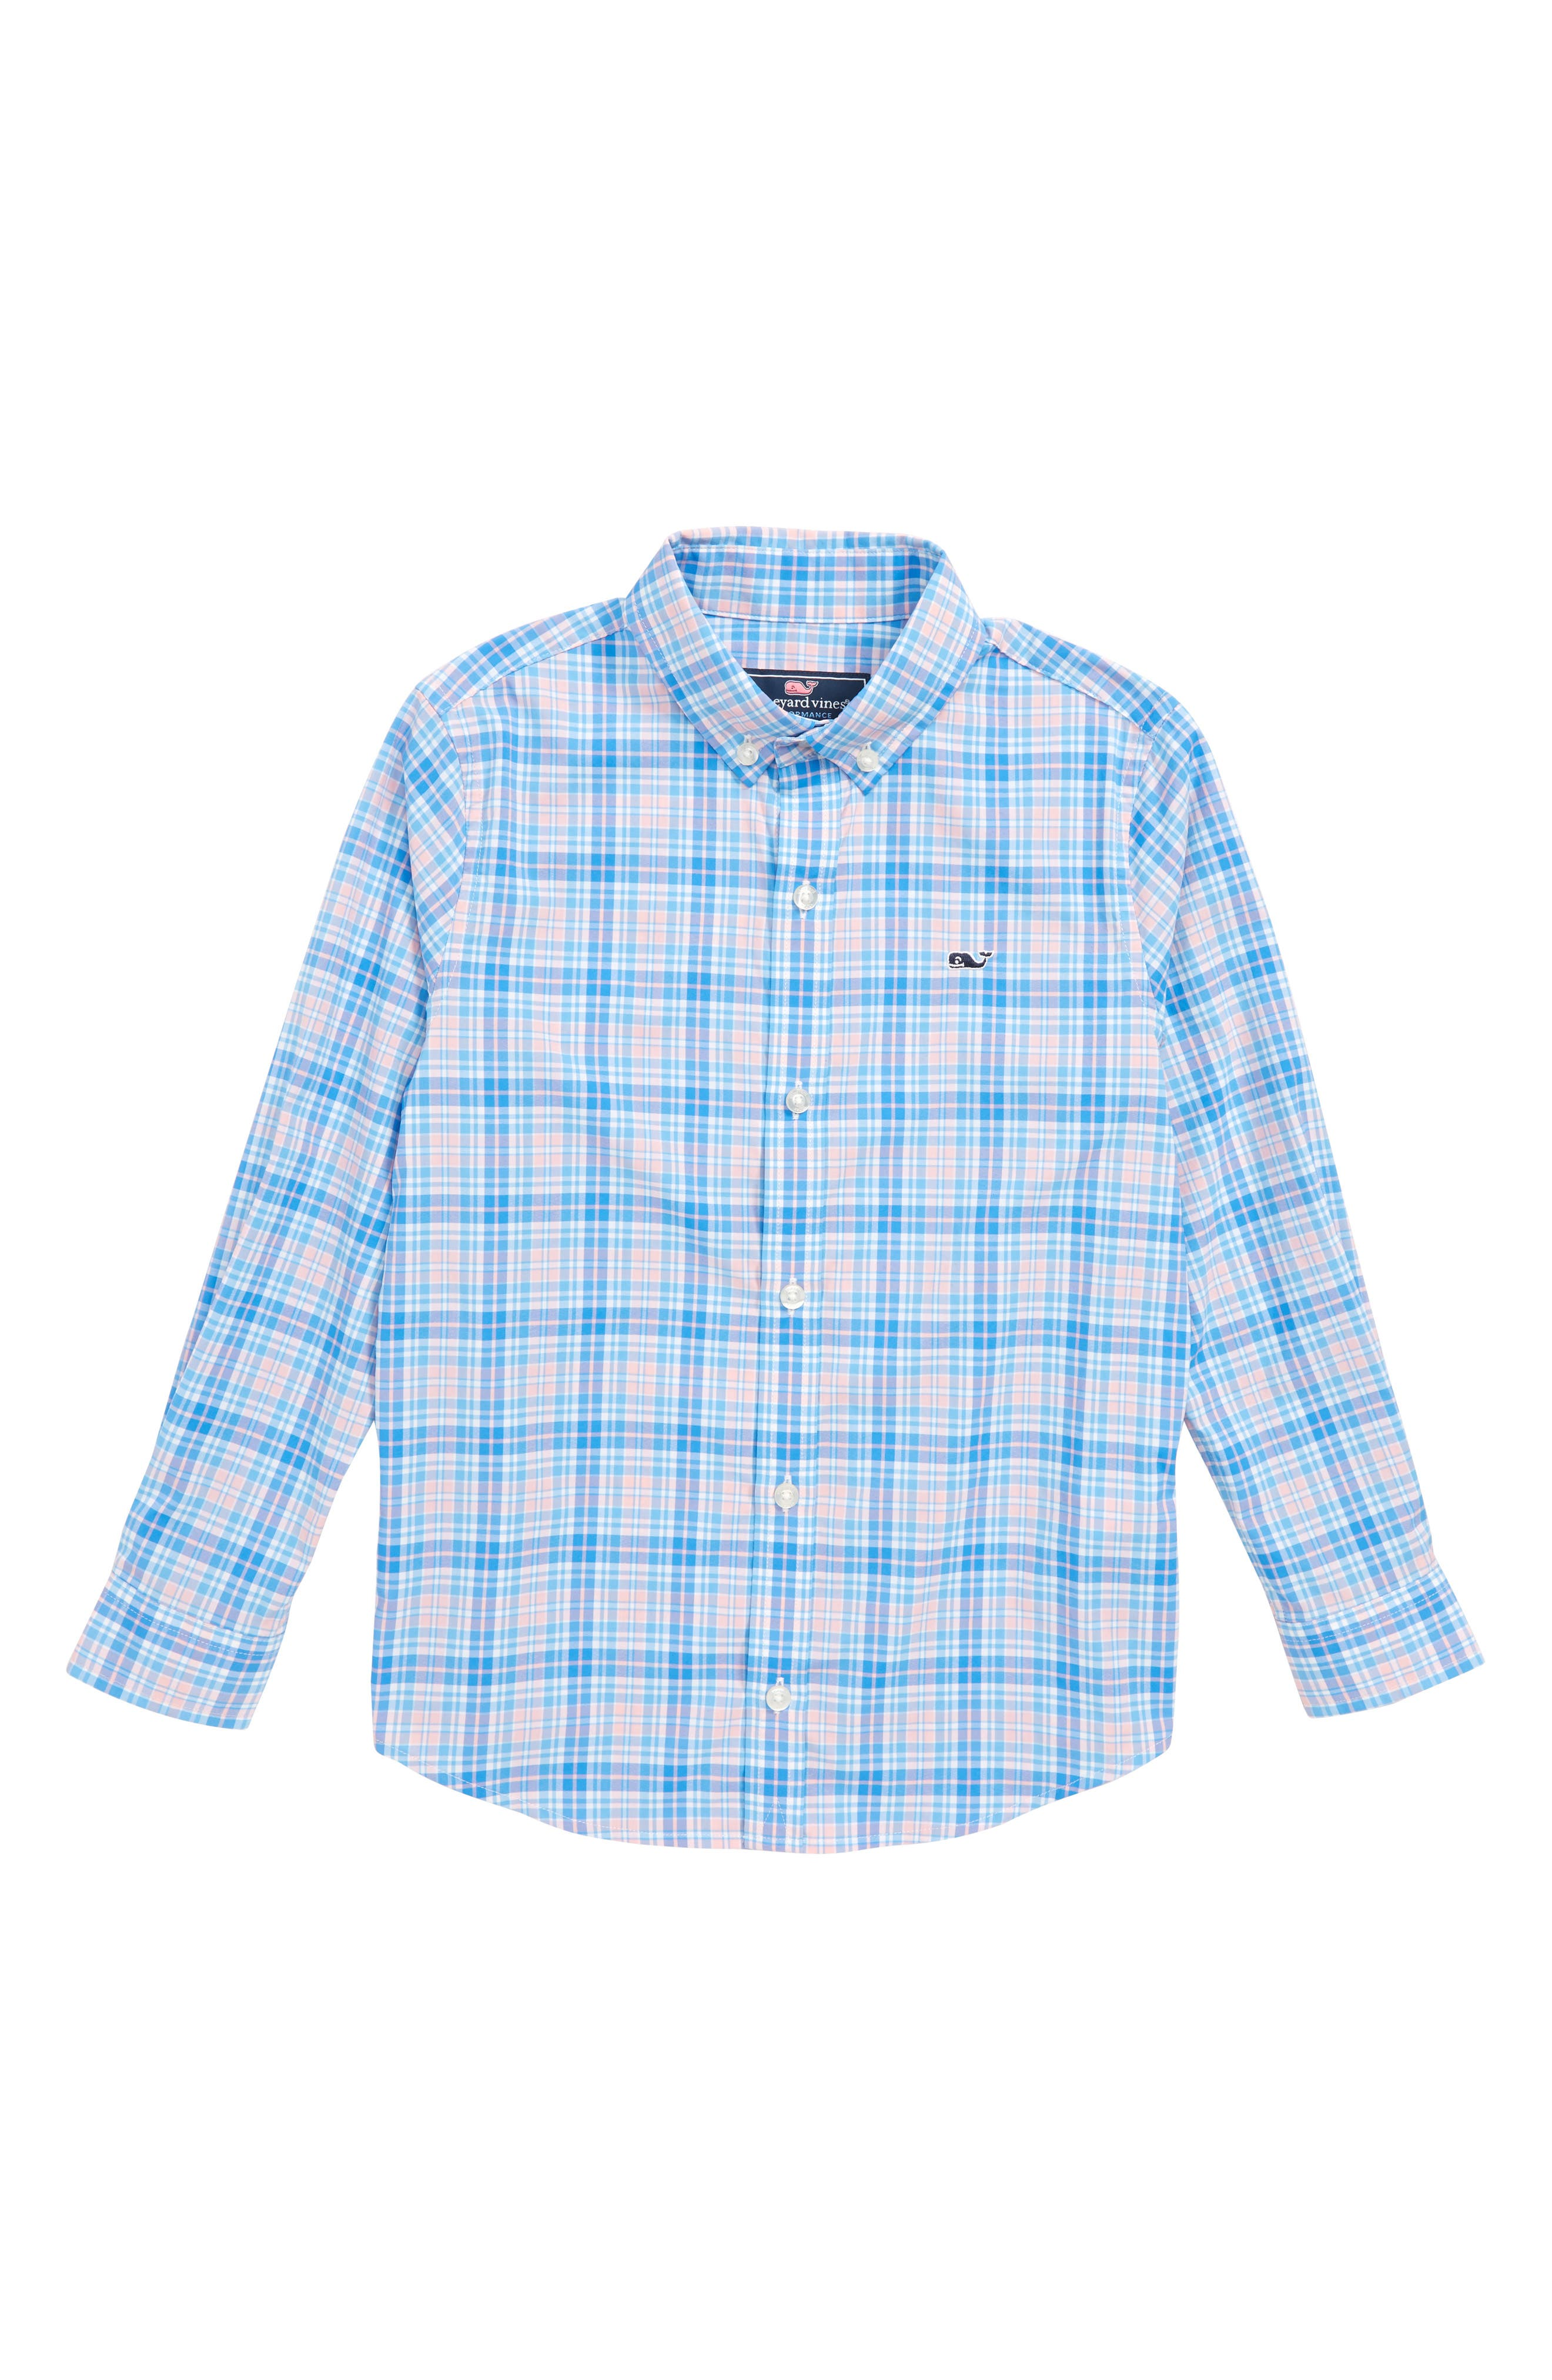 Stoney Hill Plaid Whale Shirt,                         Main,                         color, Hibiscus